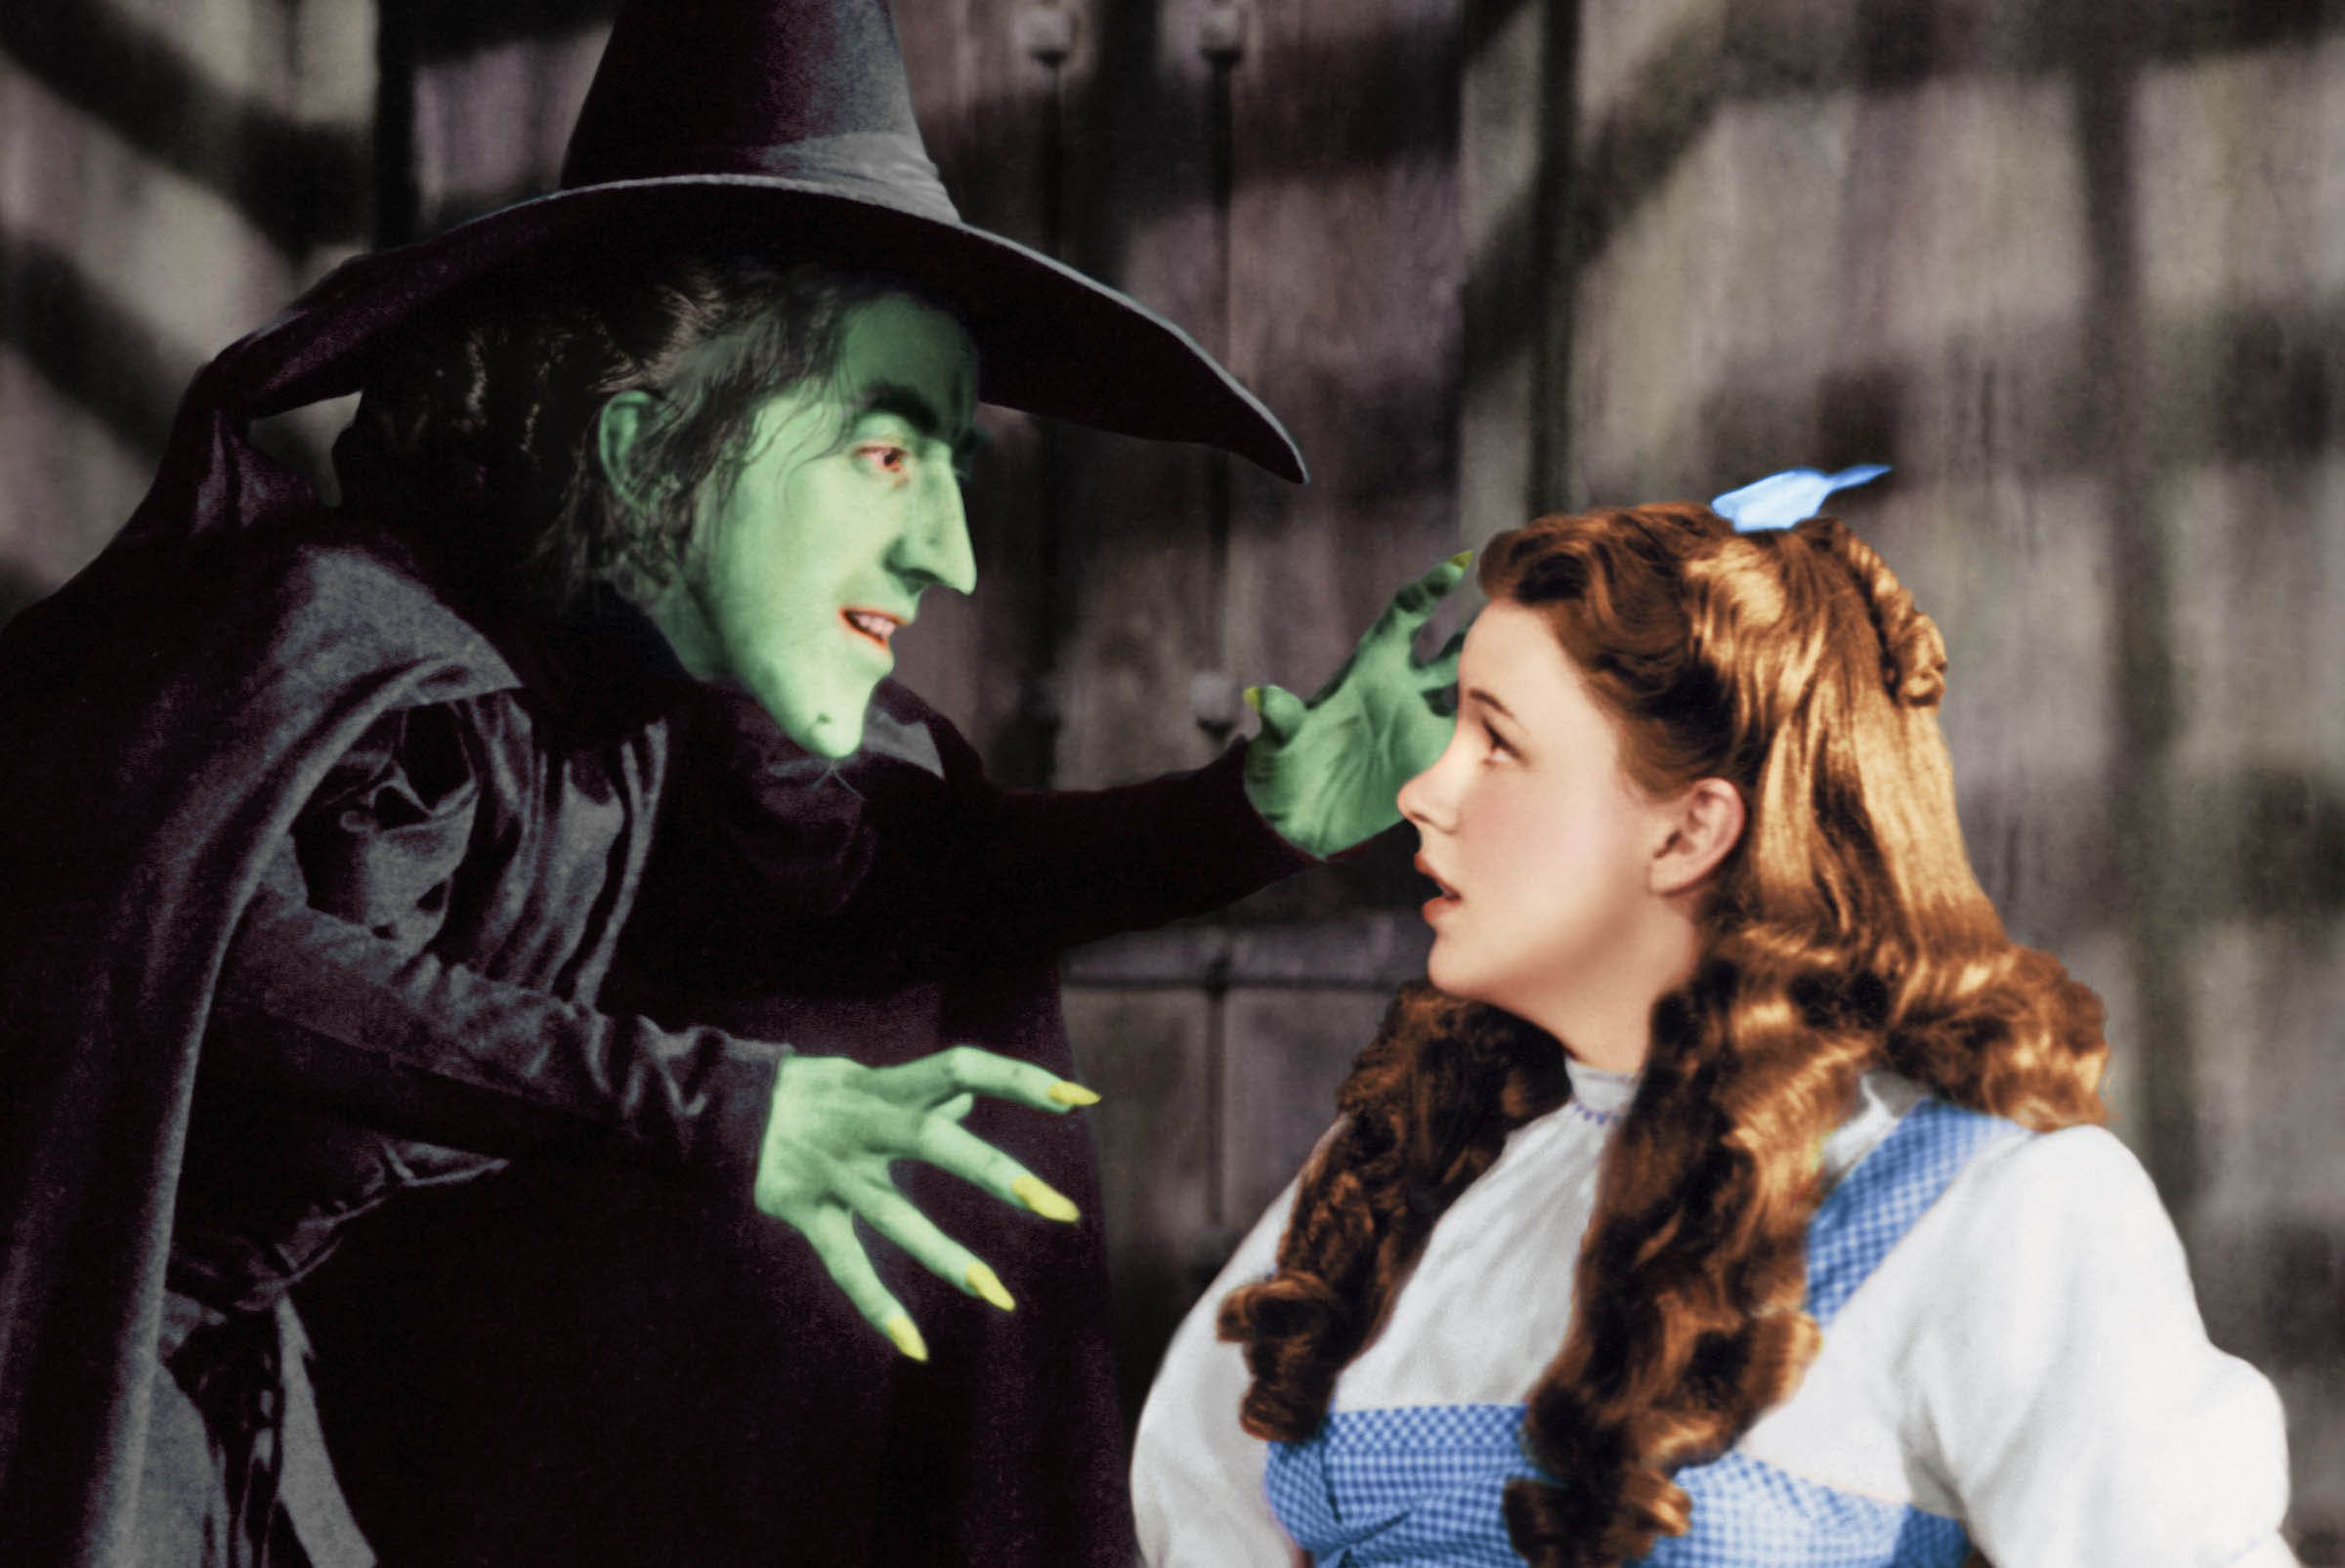 Best Kids Movies - The Wizard of Oz